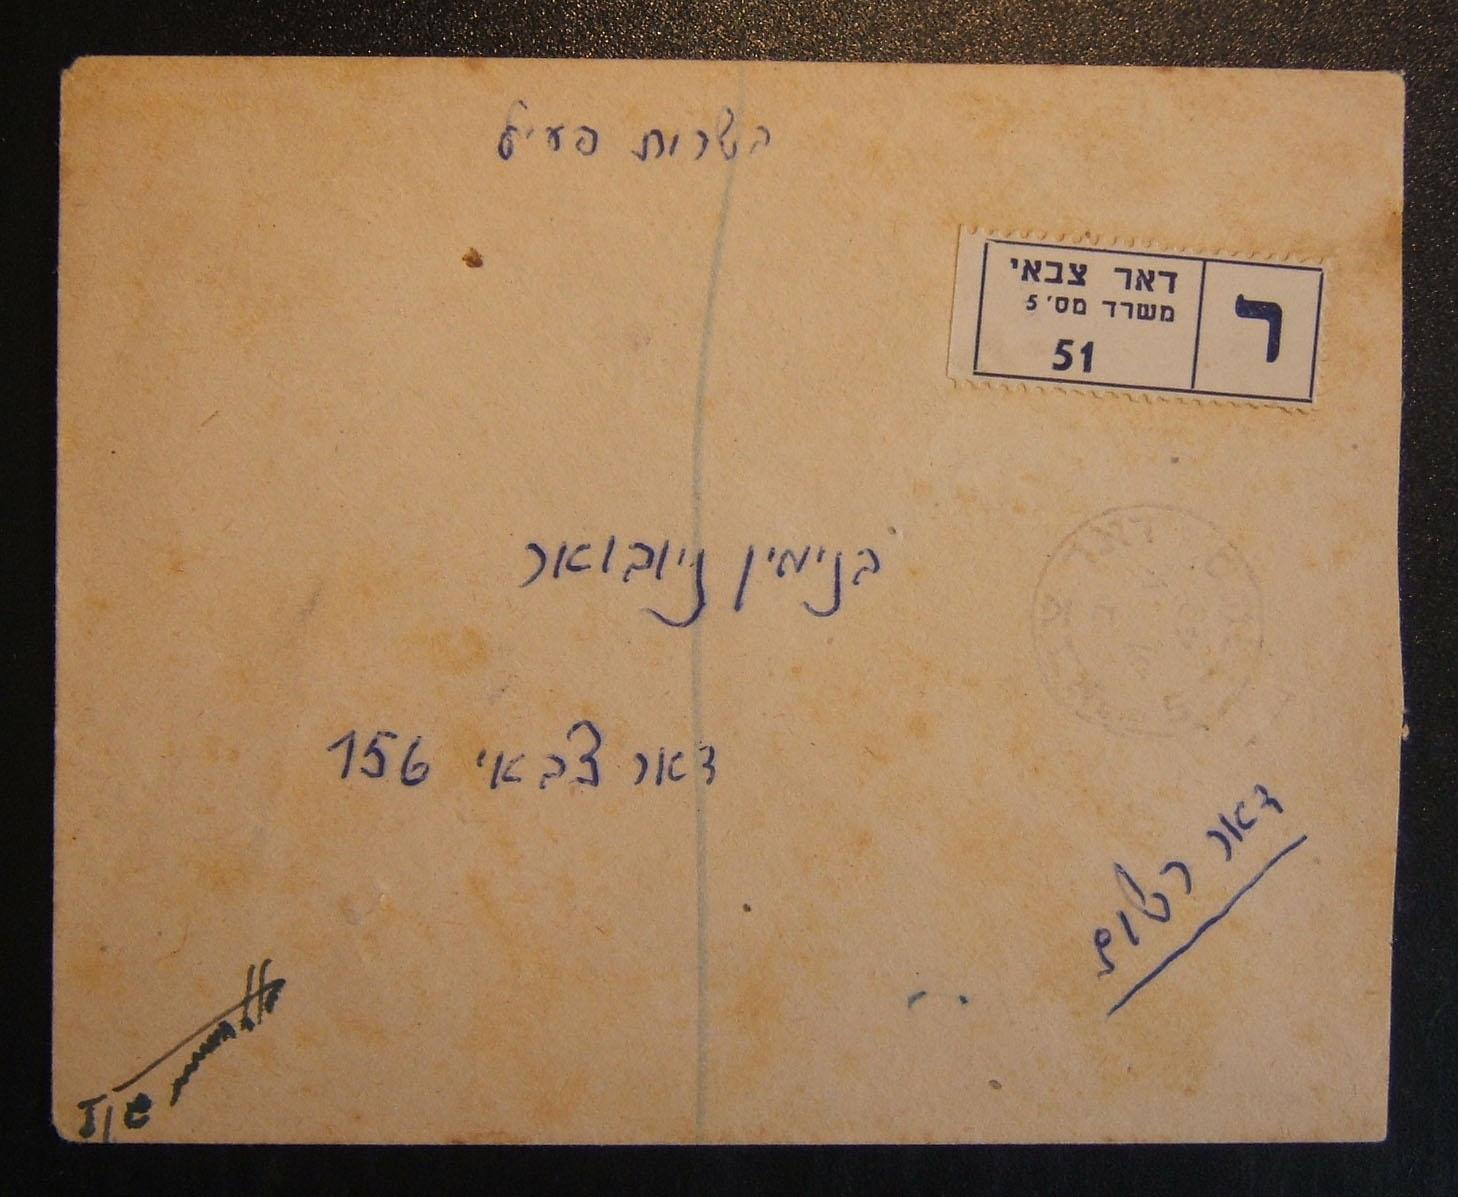 IDF reg mail ex Jerusalem (APO 5) via TLV HQ to APO 15, 31/05-1/06/49